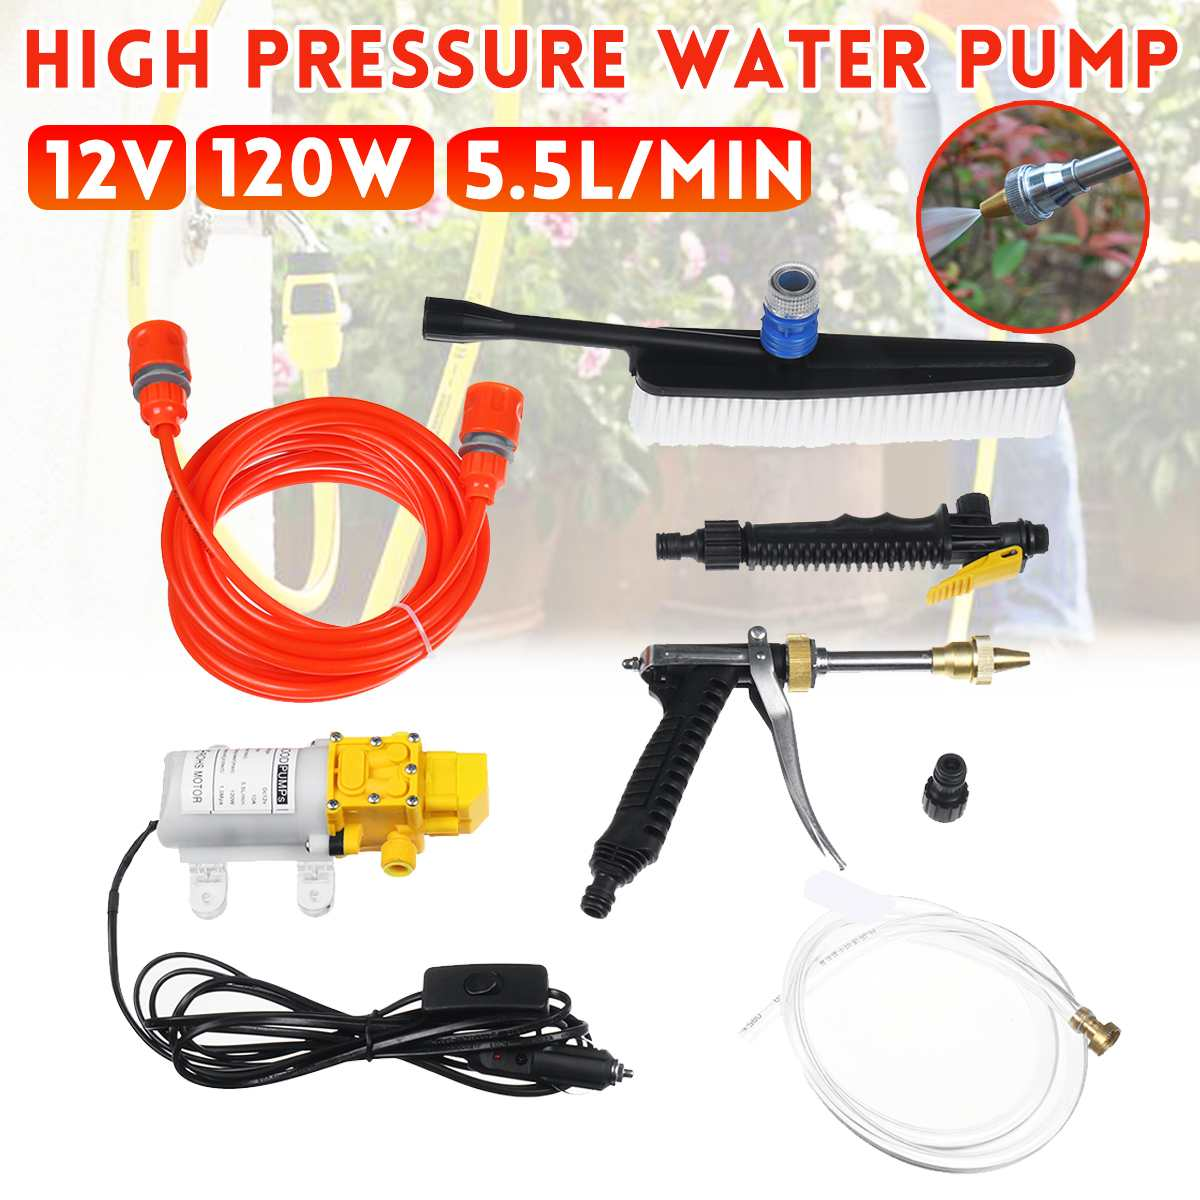 12V 100W Portable Car Washer Guns Pump Car Sprayer High Pressure Cleaner Electric Cleaning Auto Device Car Care Washing Machine